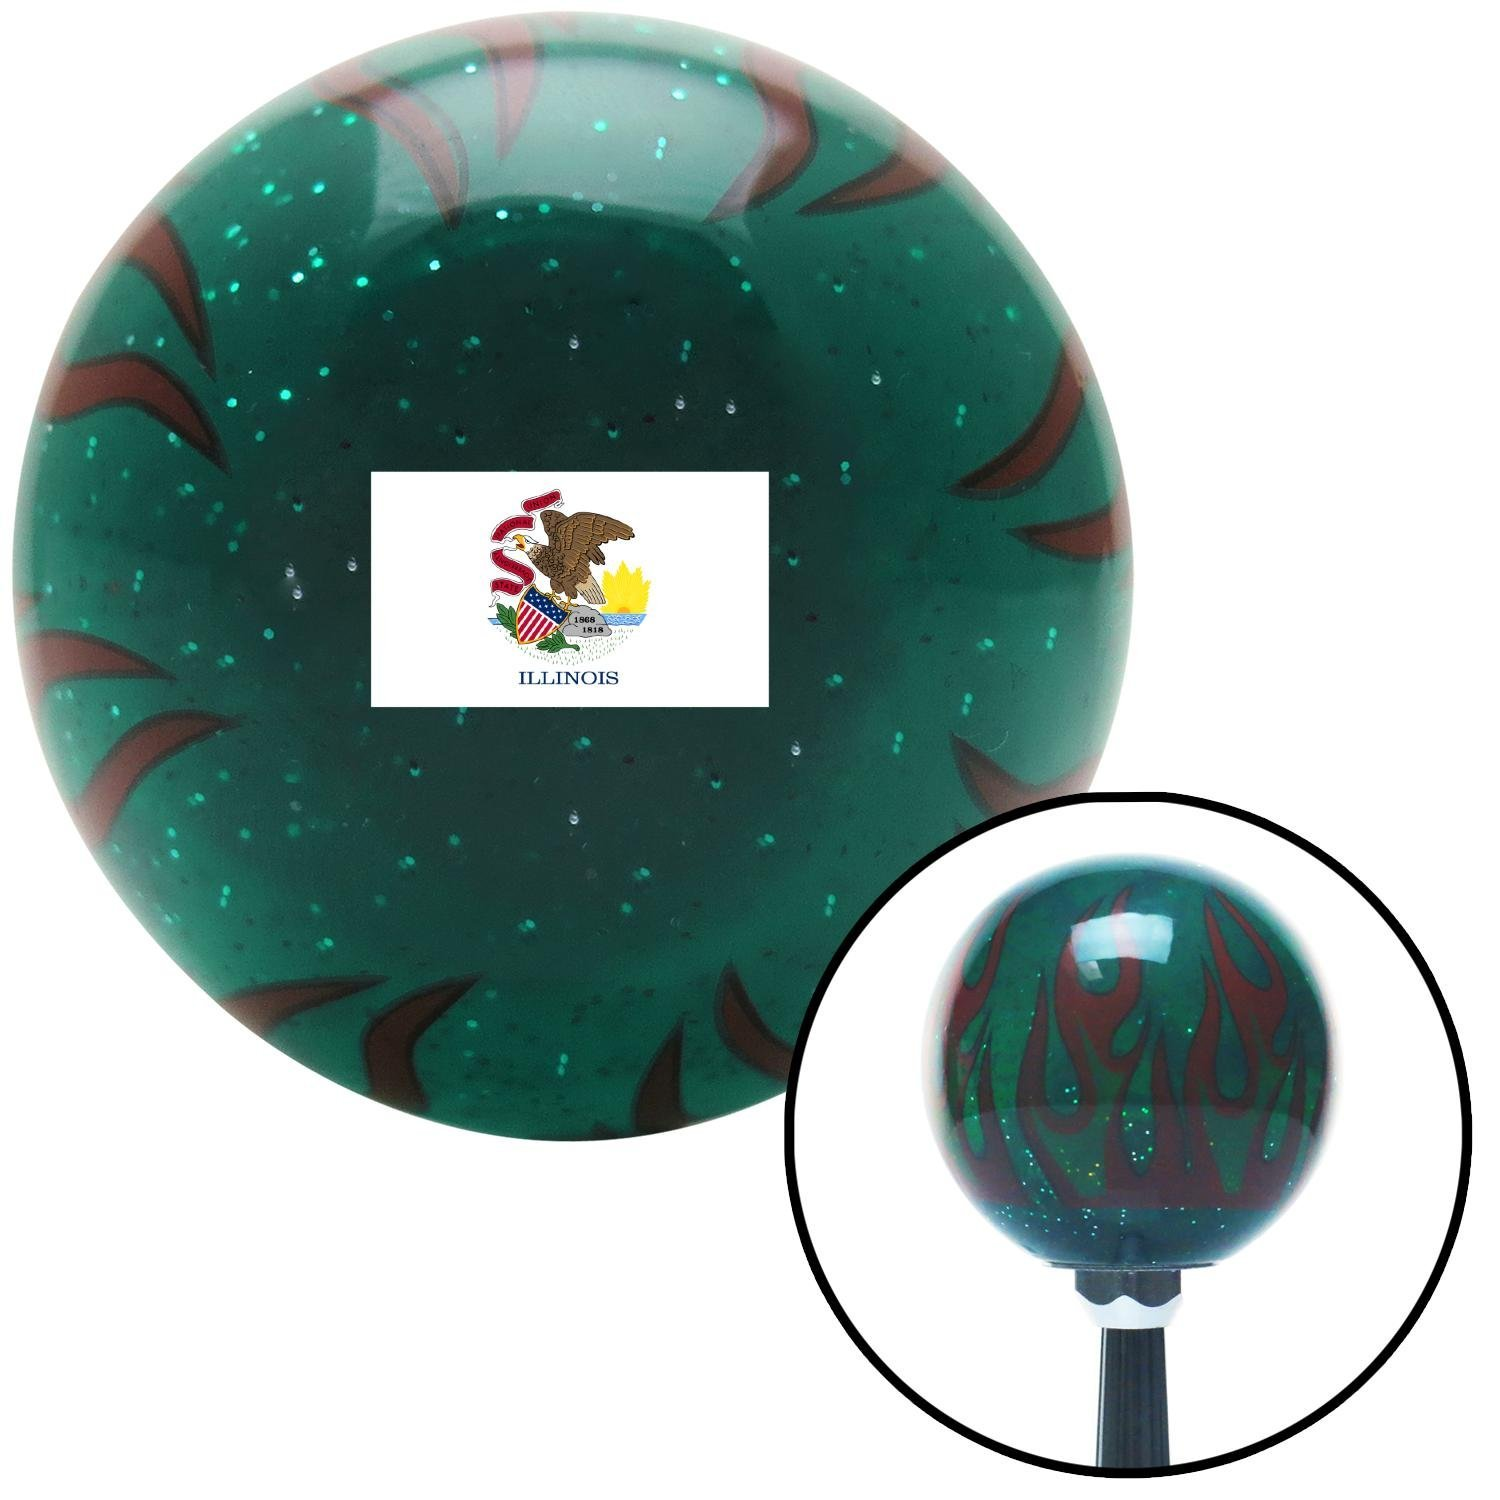 American Shifter 310992 Shift Knob Illinois Green Flame Metal Flake with M16 x 1.5 Insert